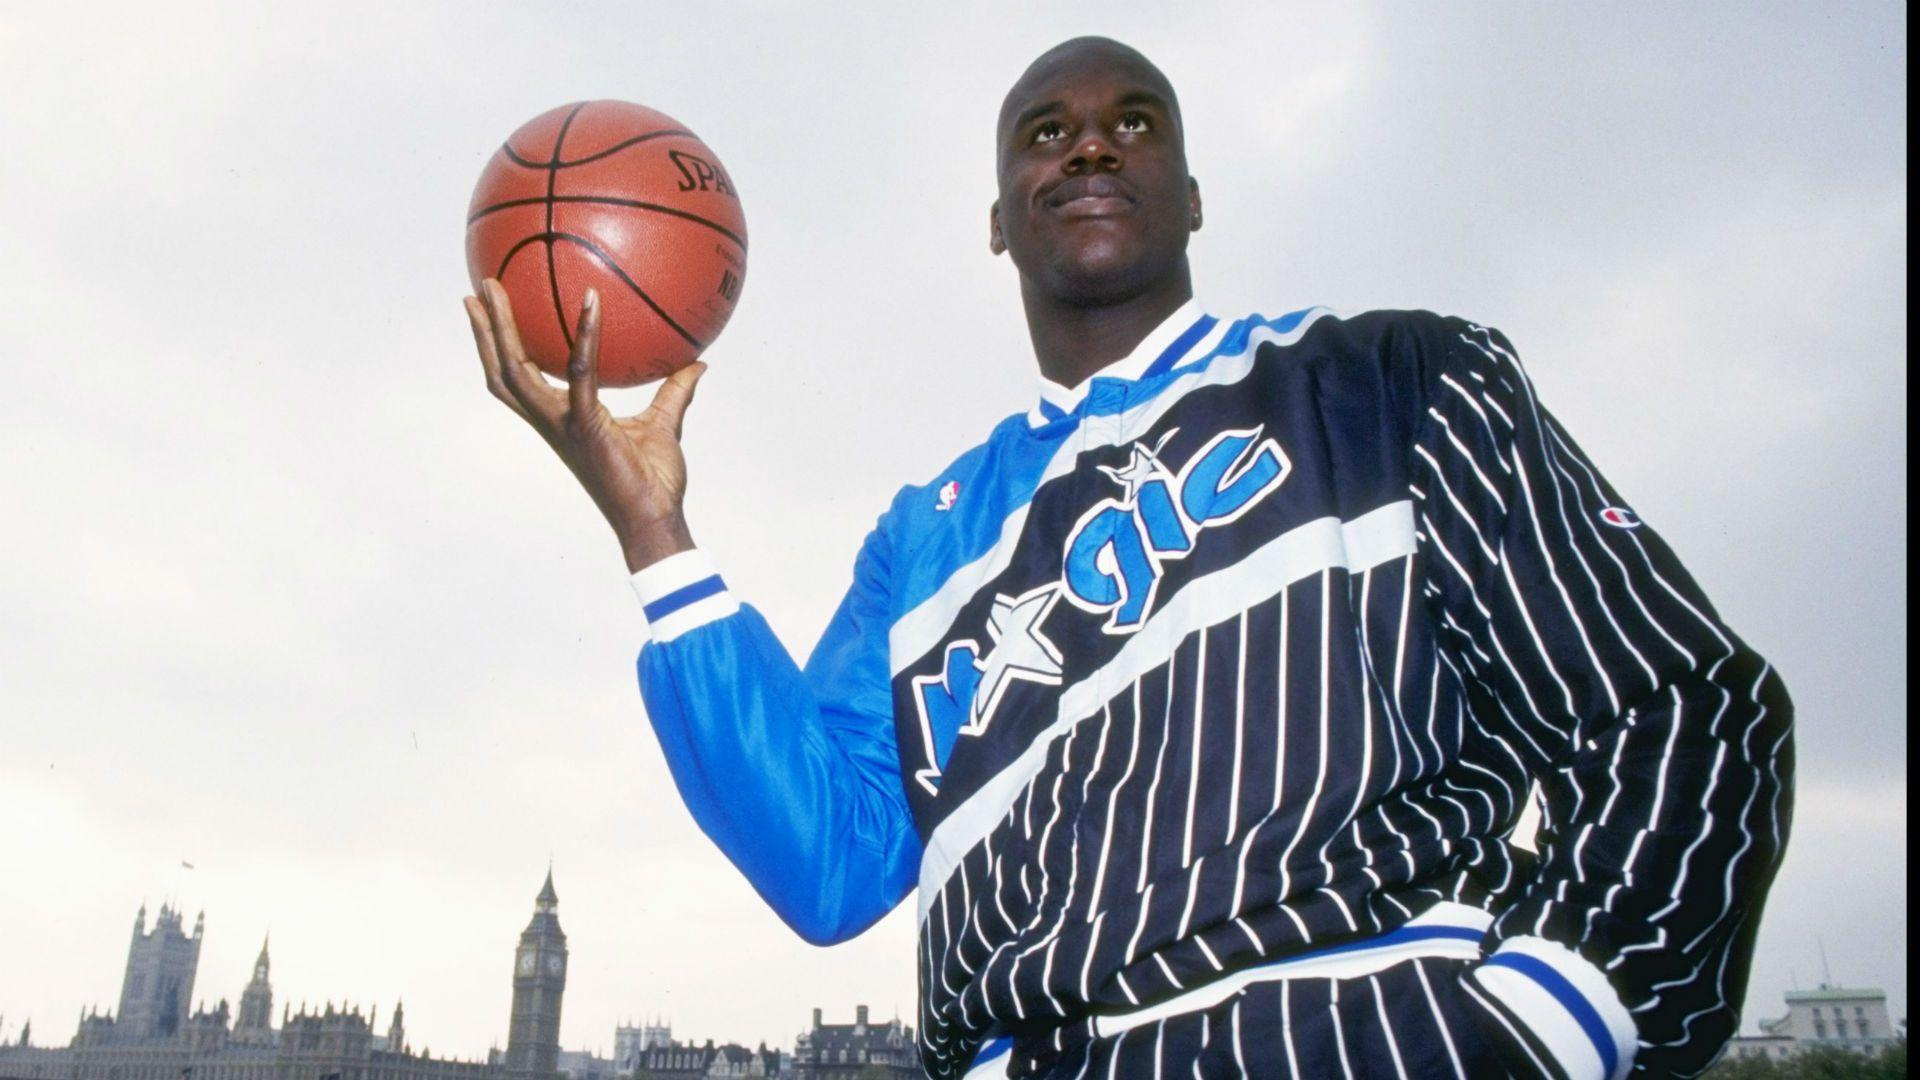 Shaquille O'Neal says he regrets leaving the Magic for the Lakers